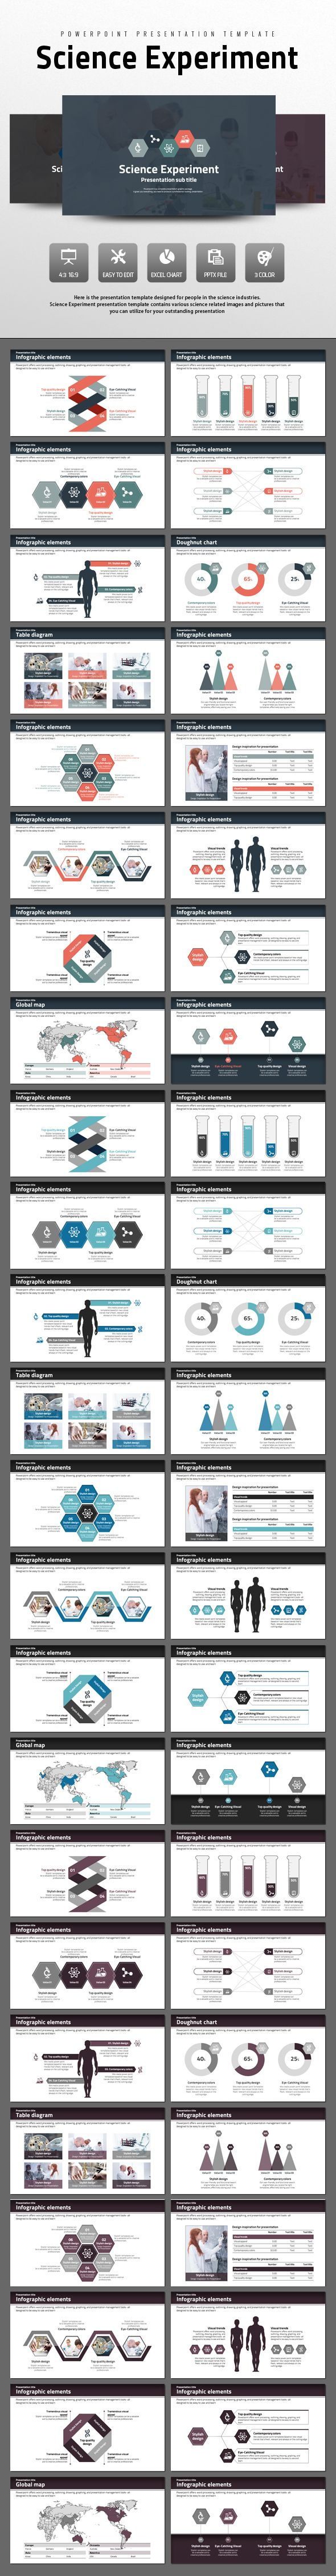 Best 25 templates for powerpoint ideas on pinterest powerpoint buy science experiment by on graphicriver here is the presentation template designed for people in the science industries toneelgroepblik Images